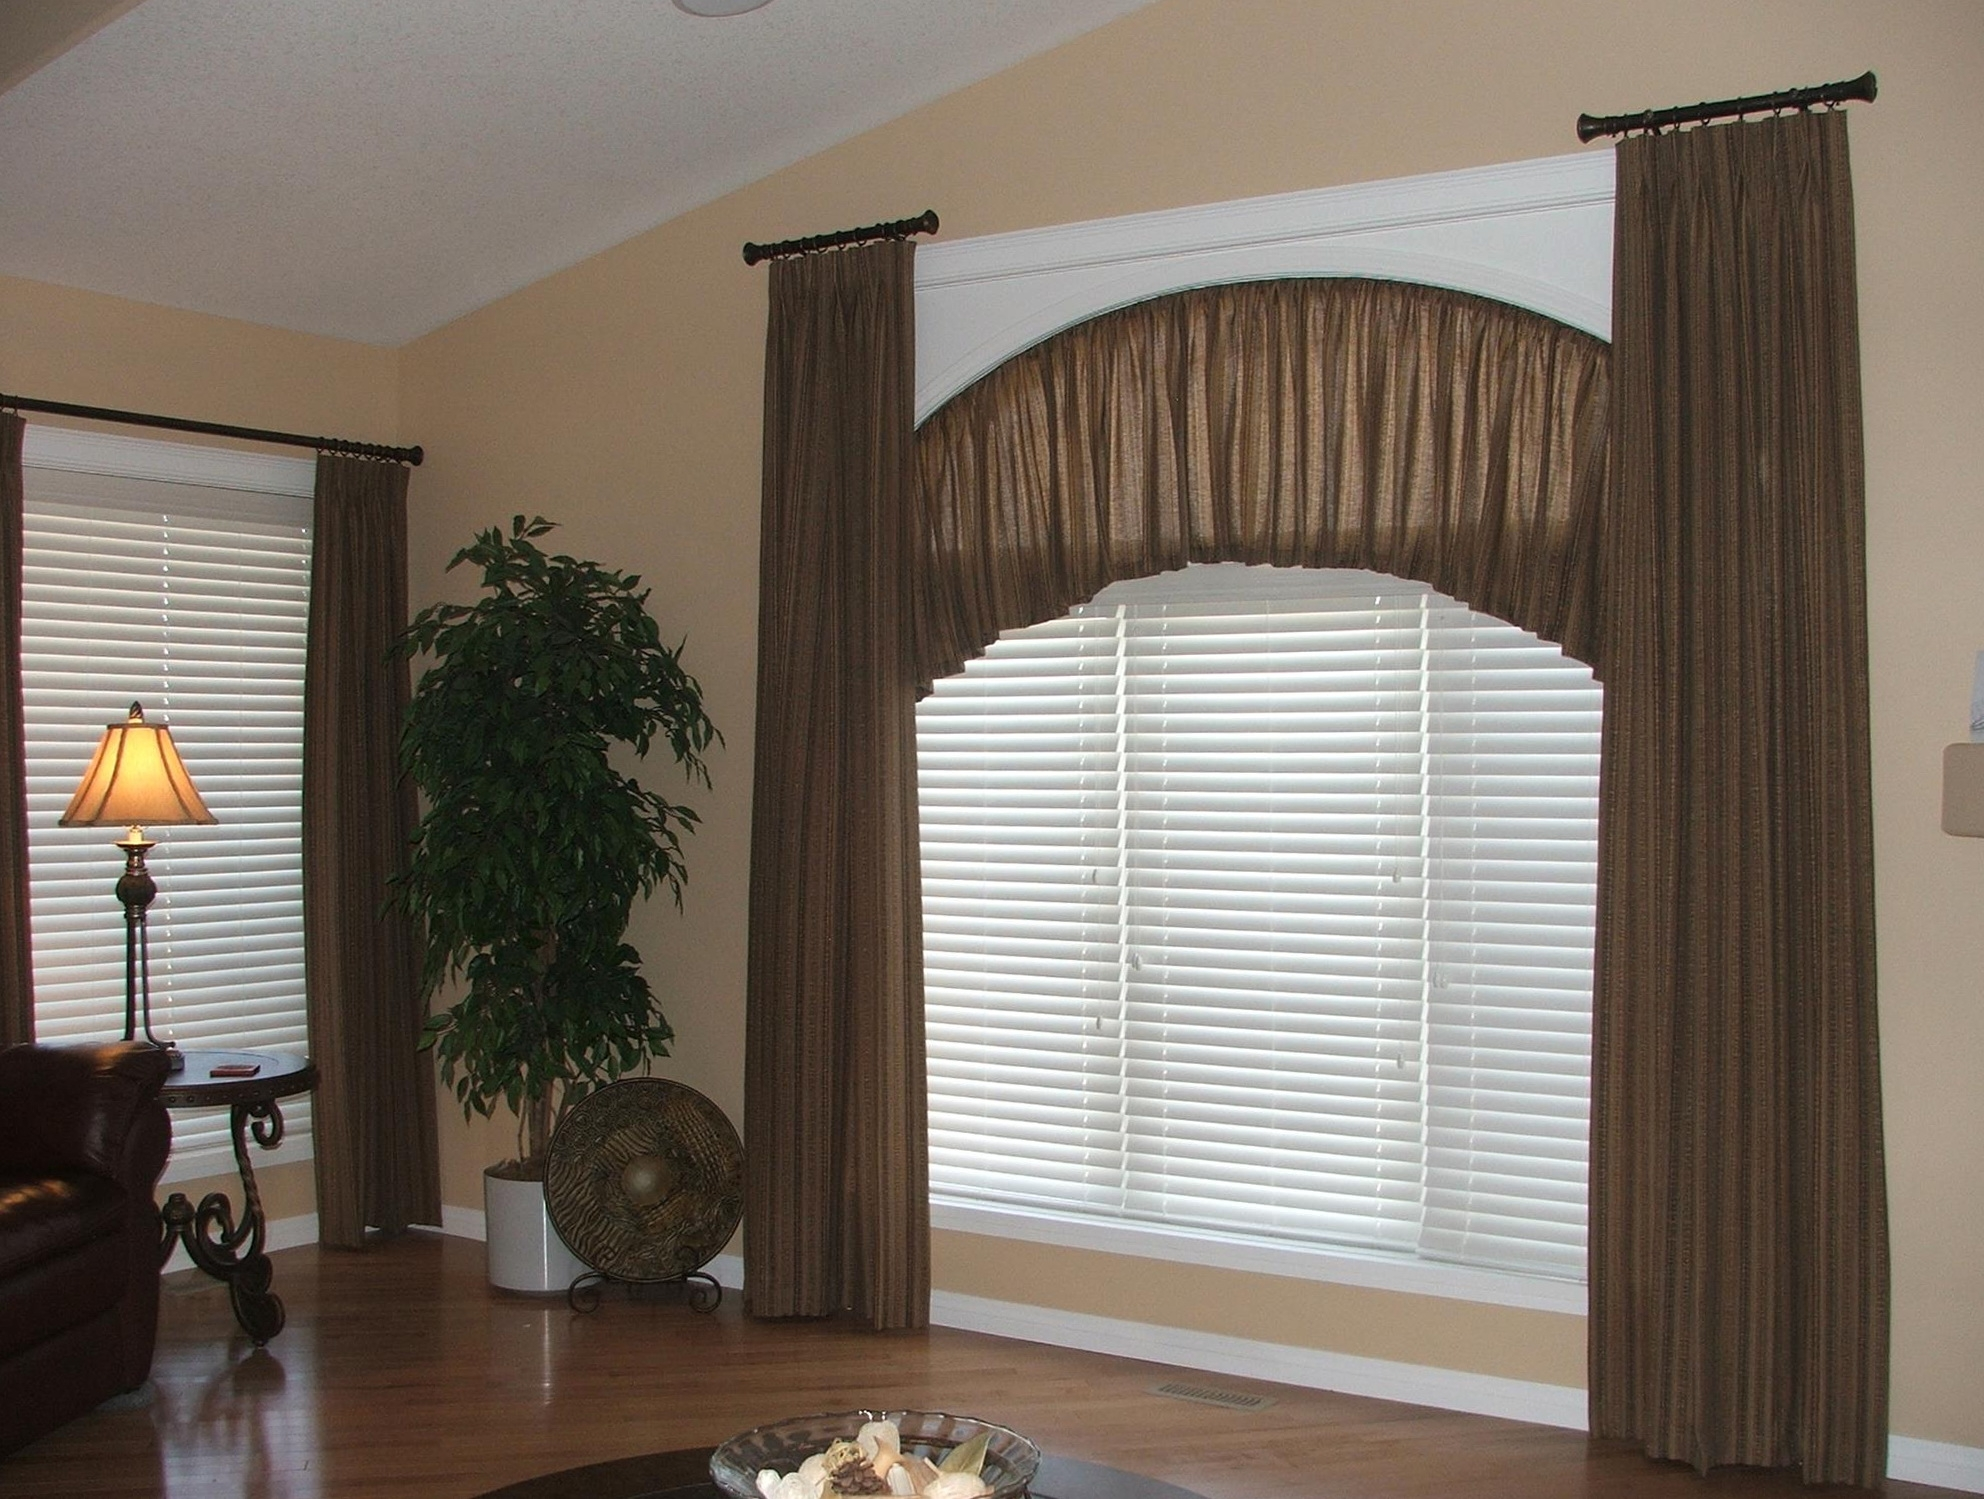 Curved Drapery Rods | Curved Curtain Rods | Curved Curtain Rod